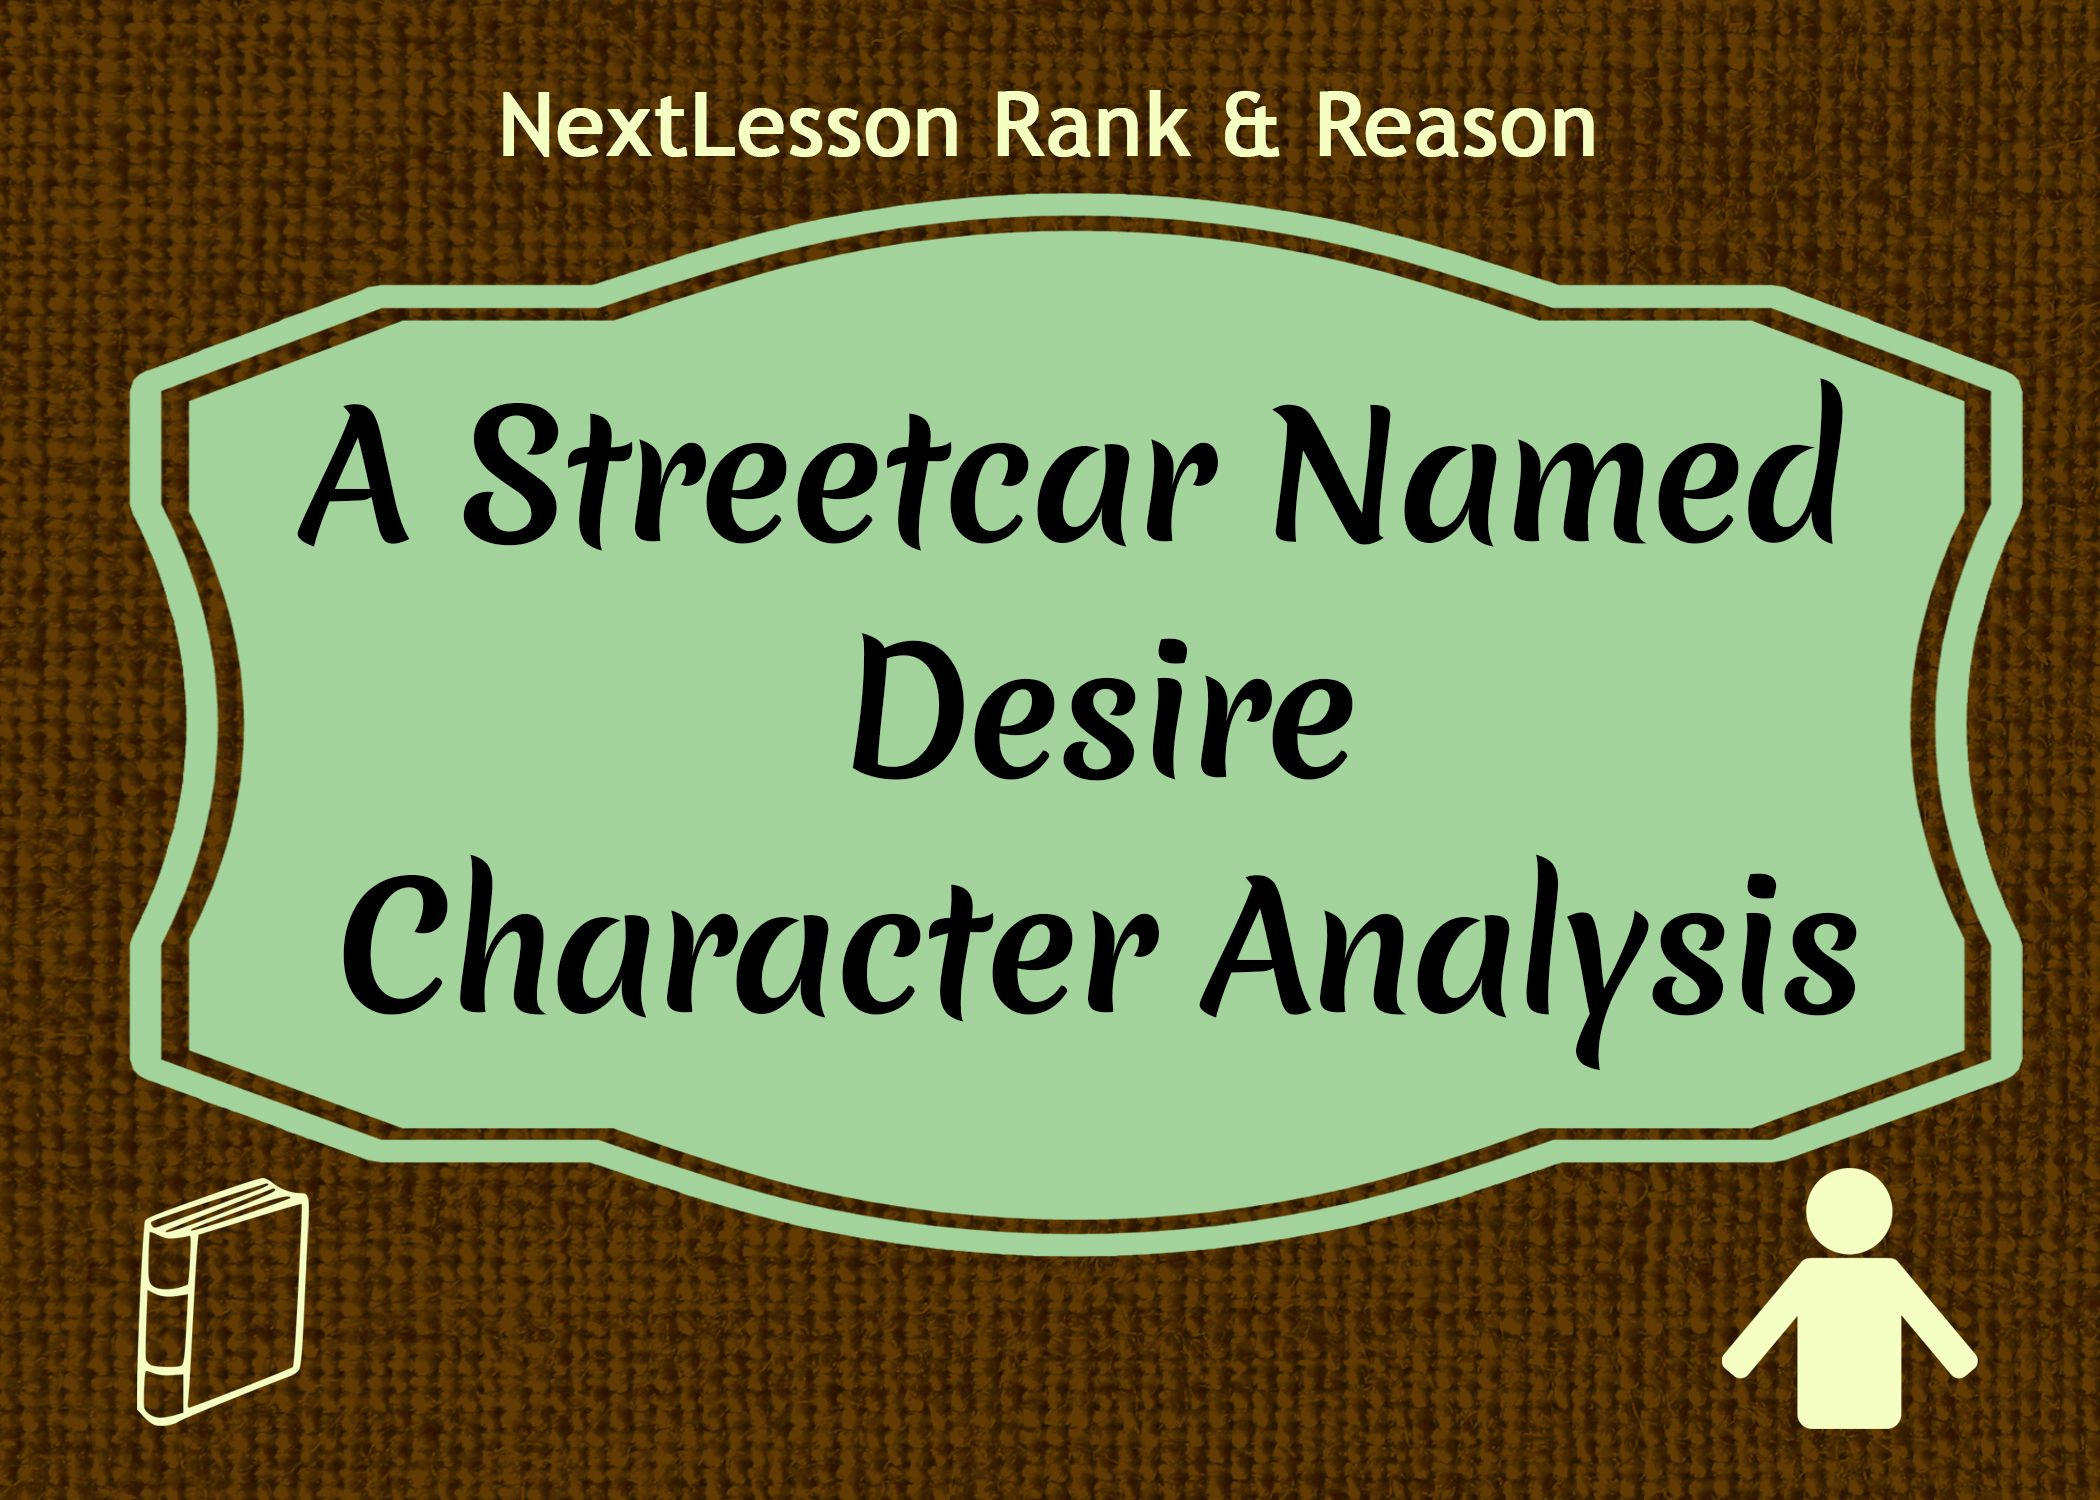 A Streetcar Named Desire Characterysis